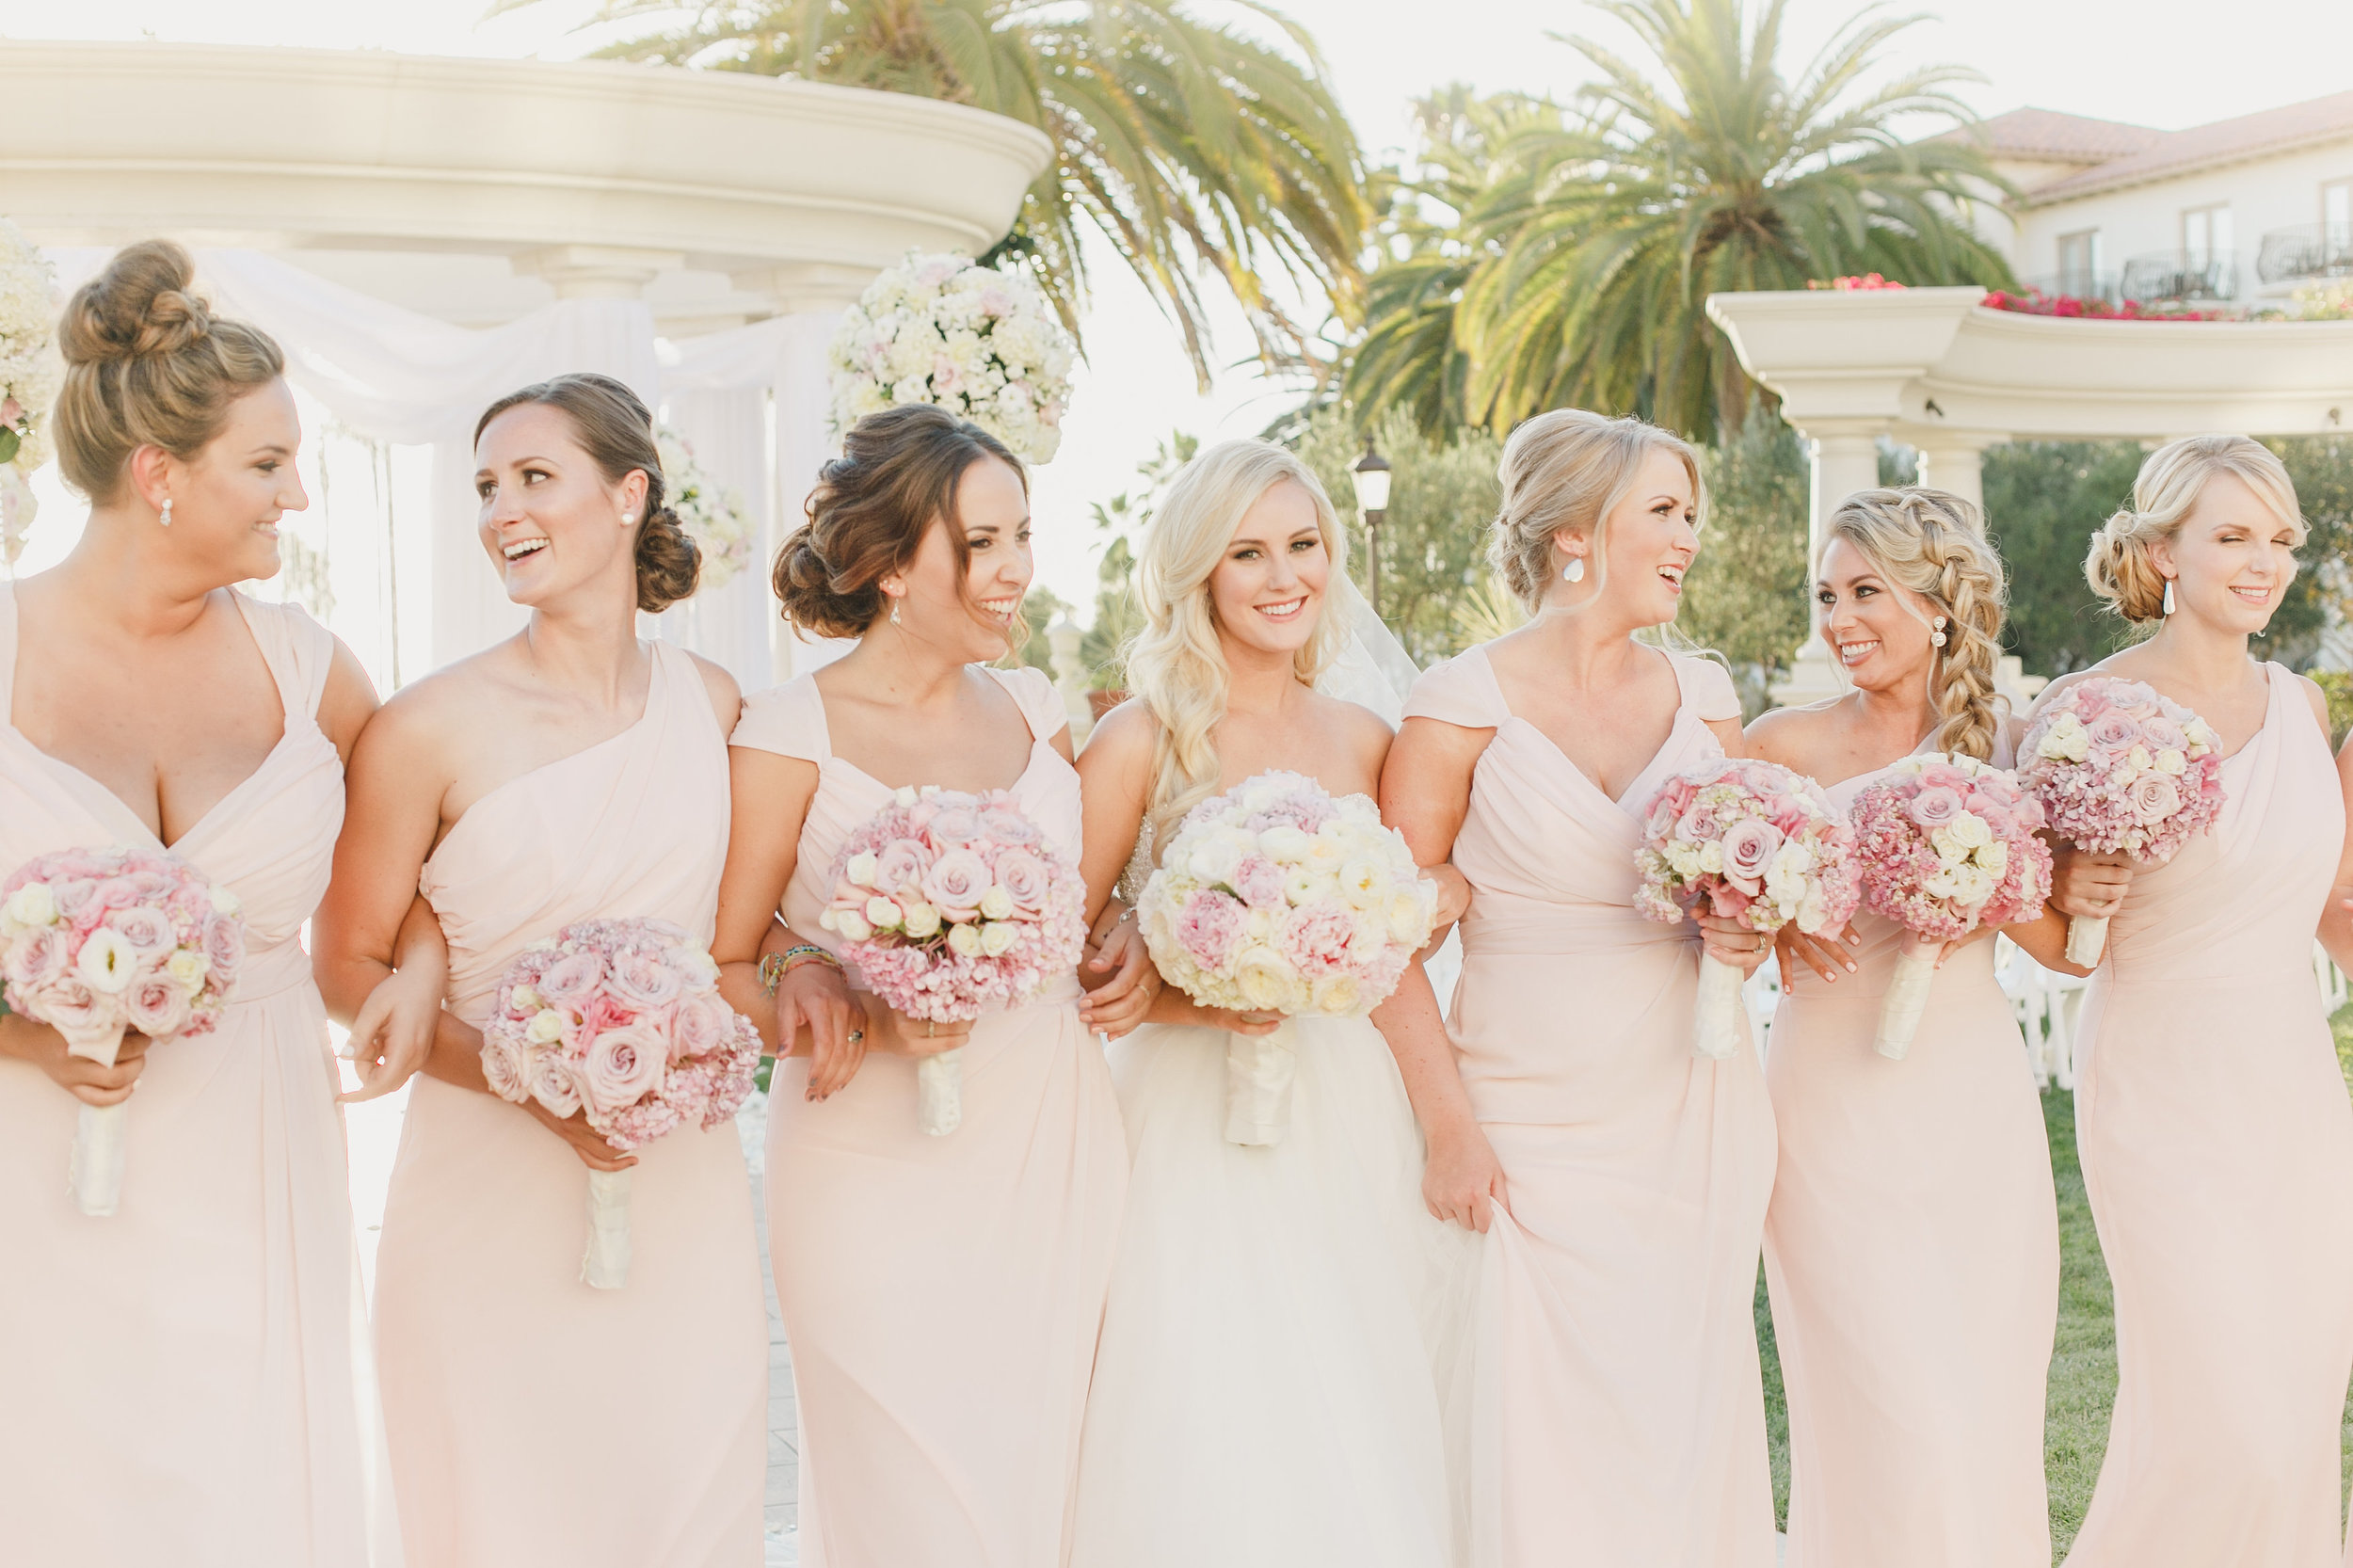 You can see the entire wedding look was soft and glamorous. Since Megan's hair was all down Genna and the DV artists braided and created soft up dos for all the bridesmaids.